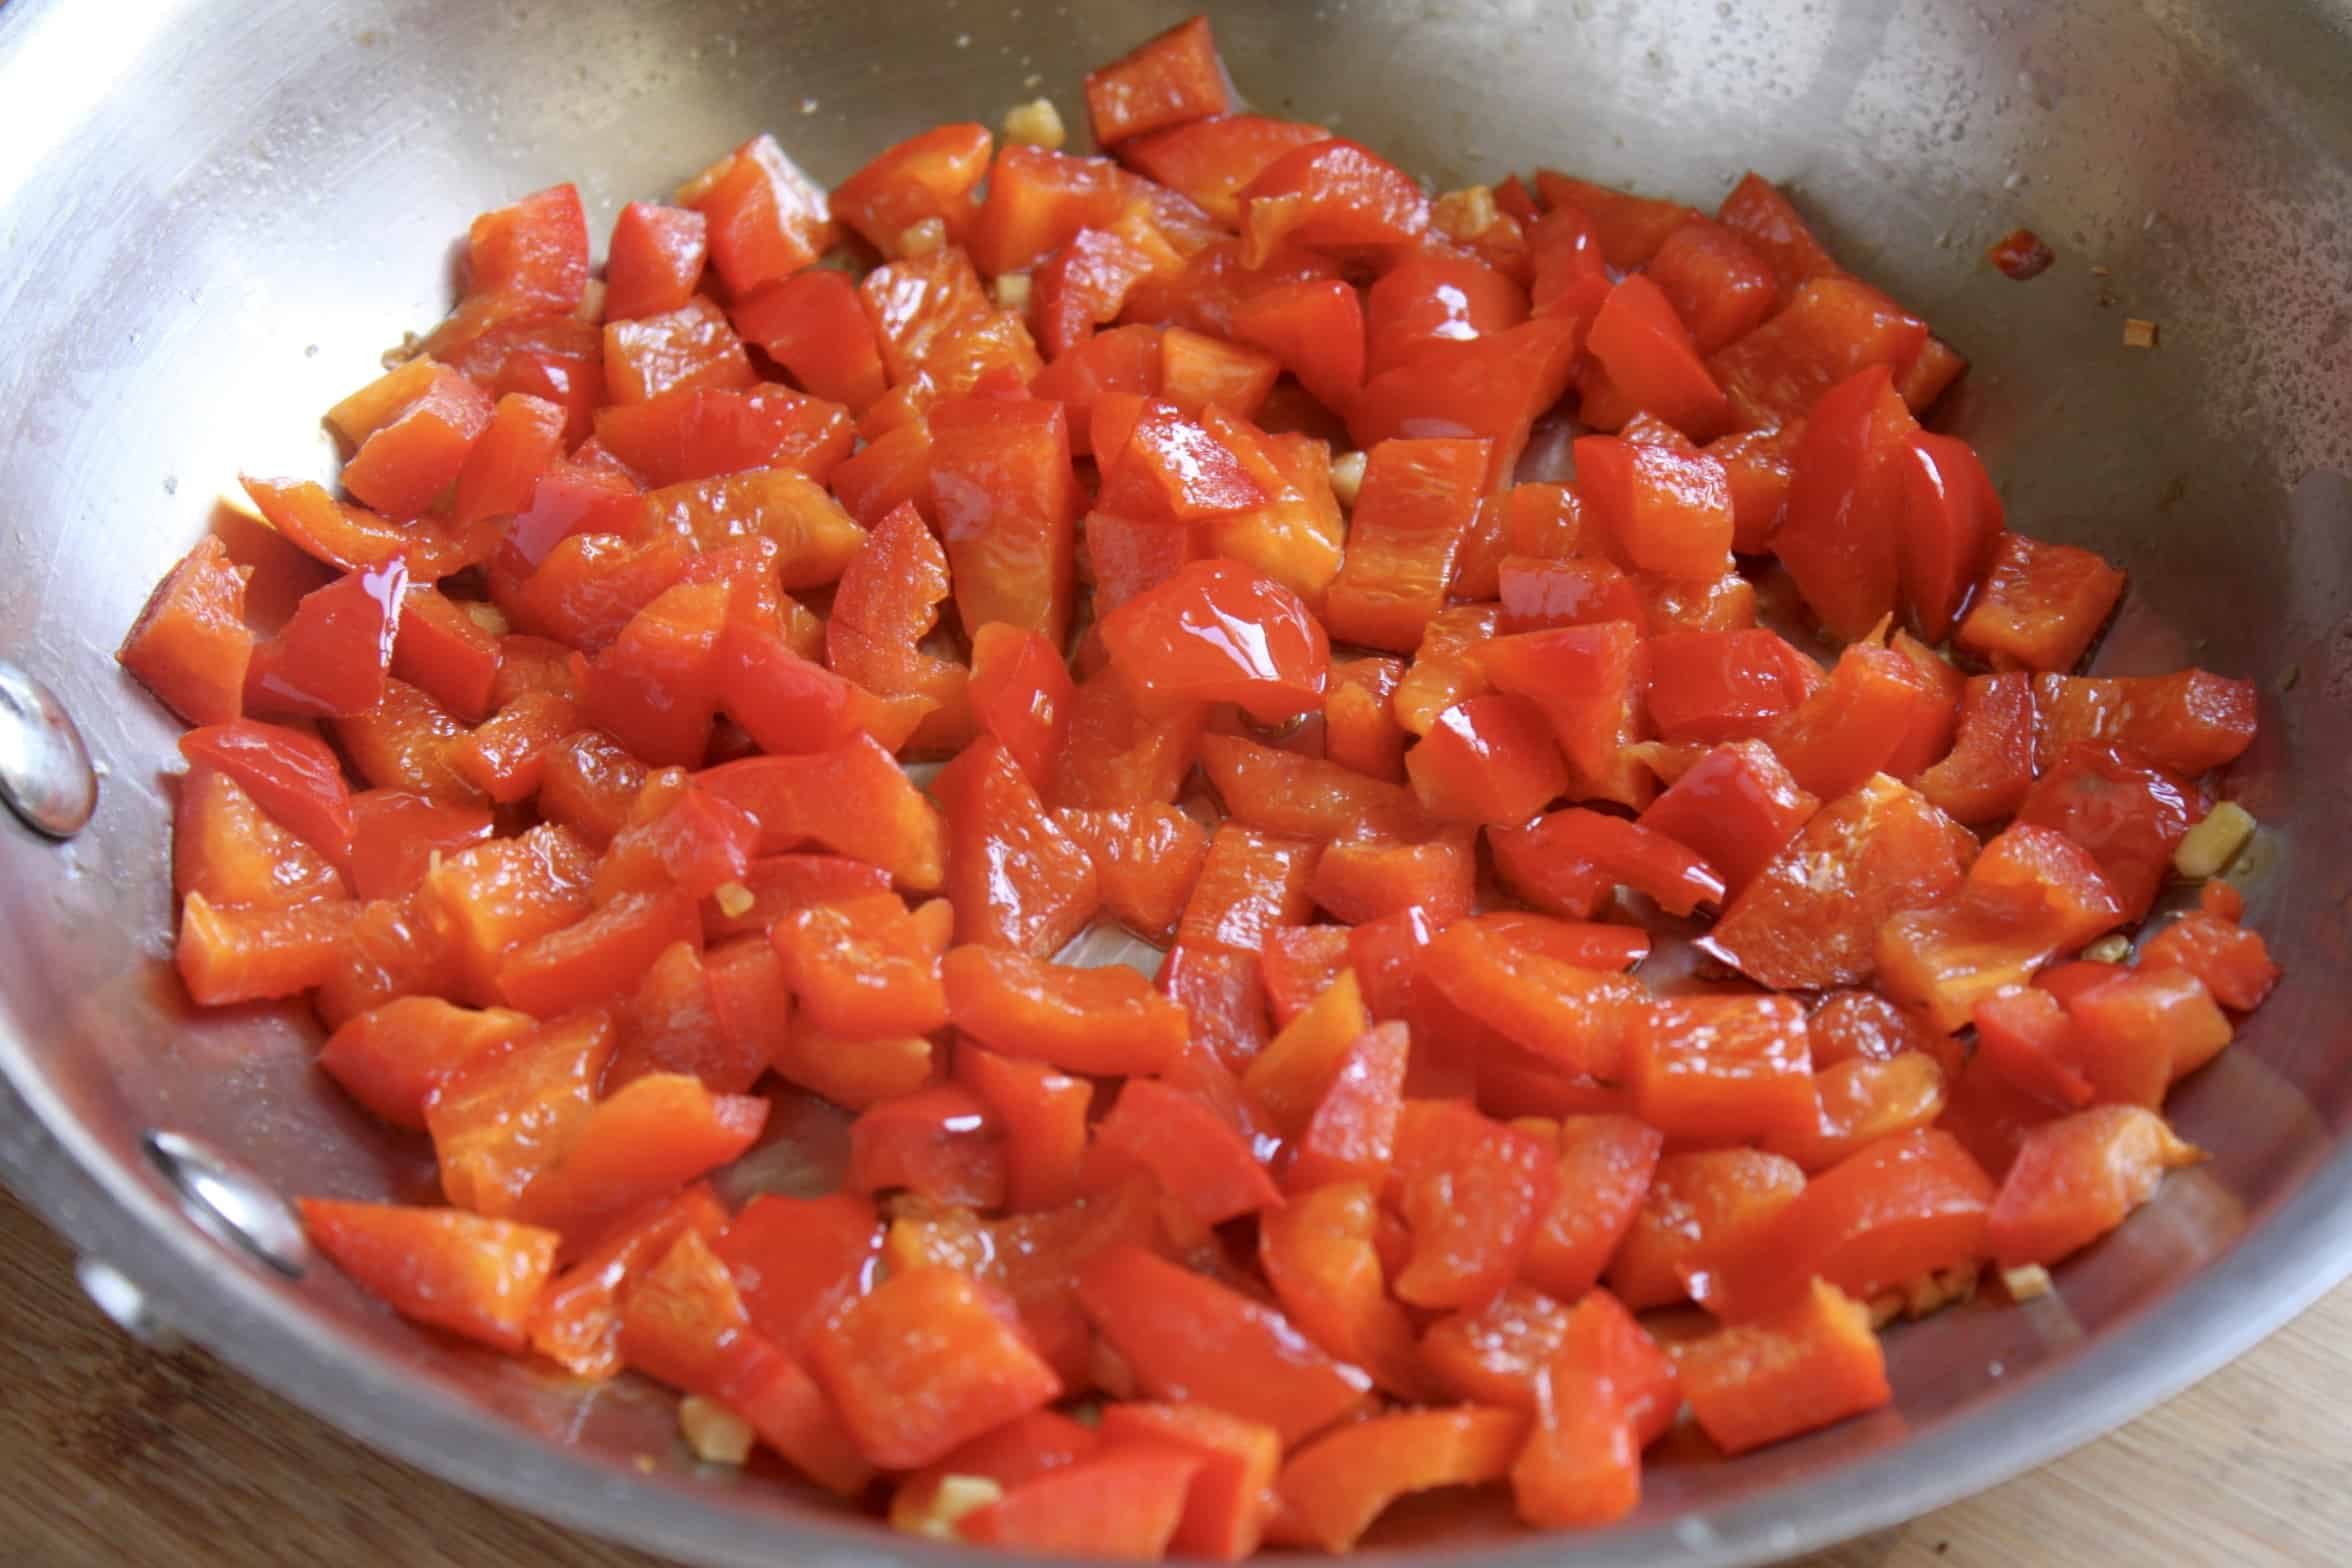 red bell peppers in a pan